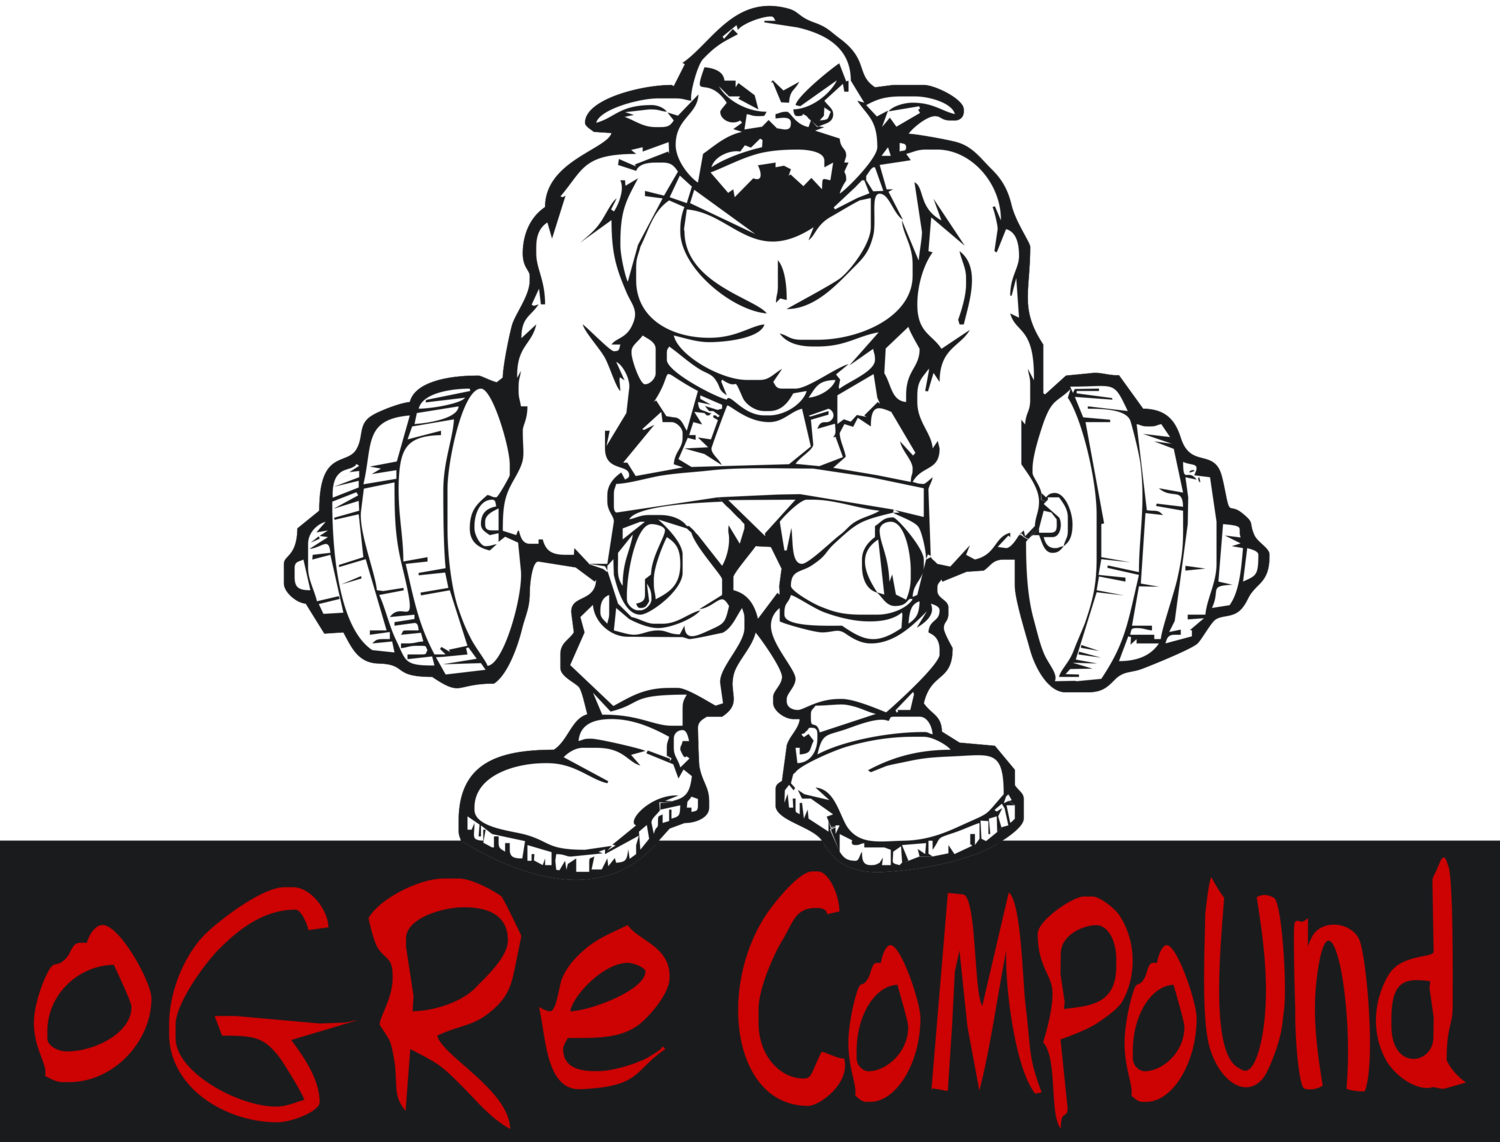 Weightlifter drawing strength training. The ogre compound